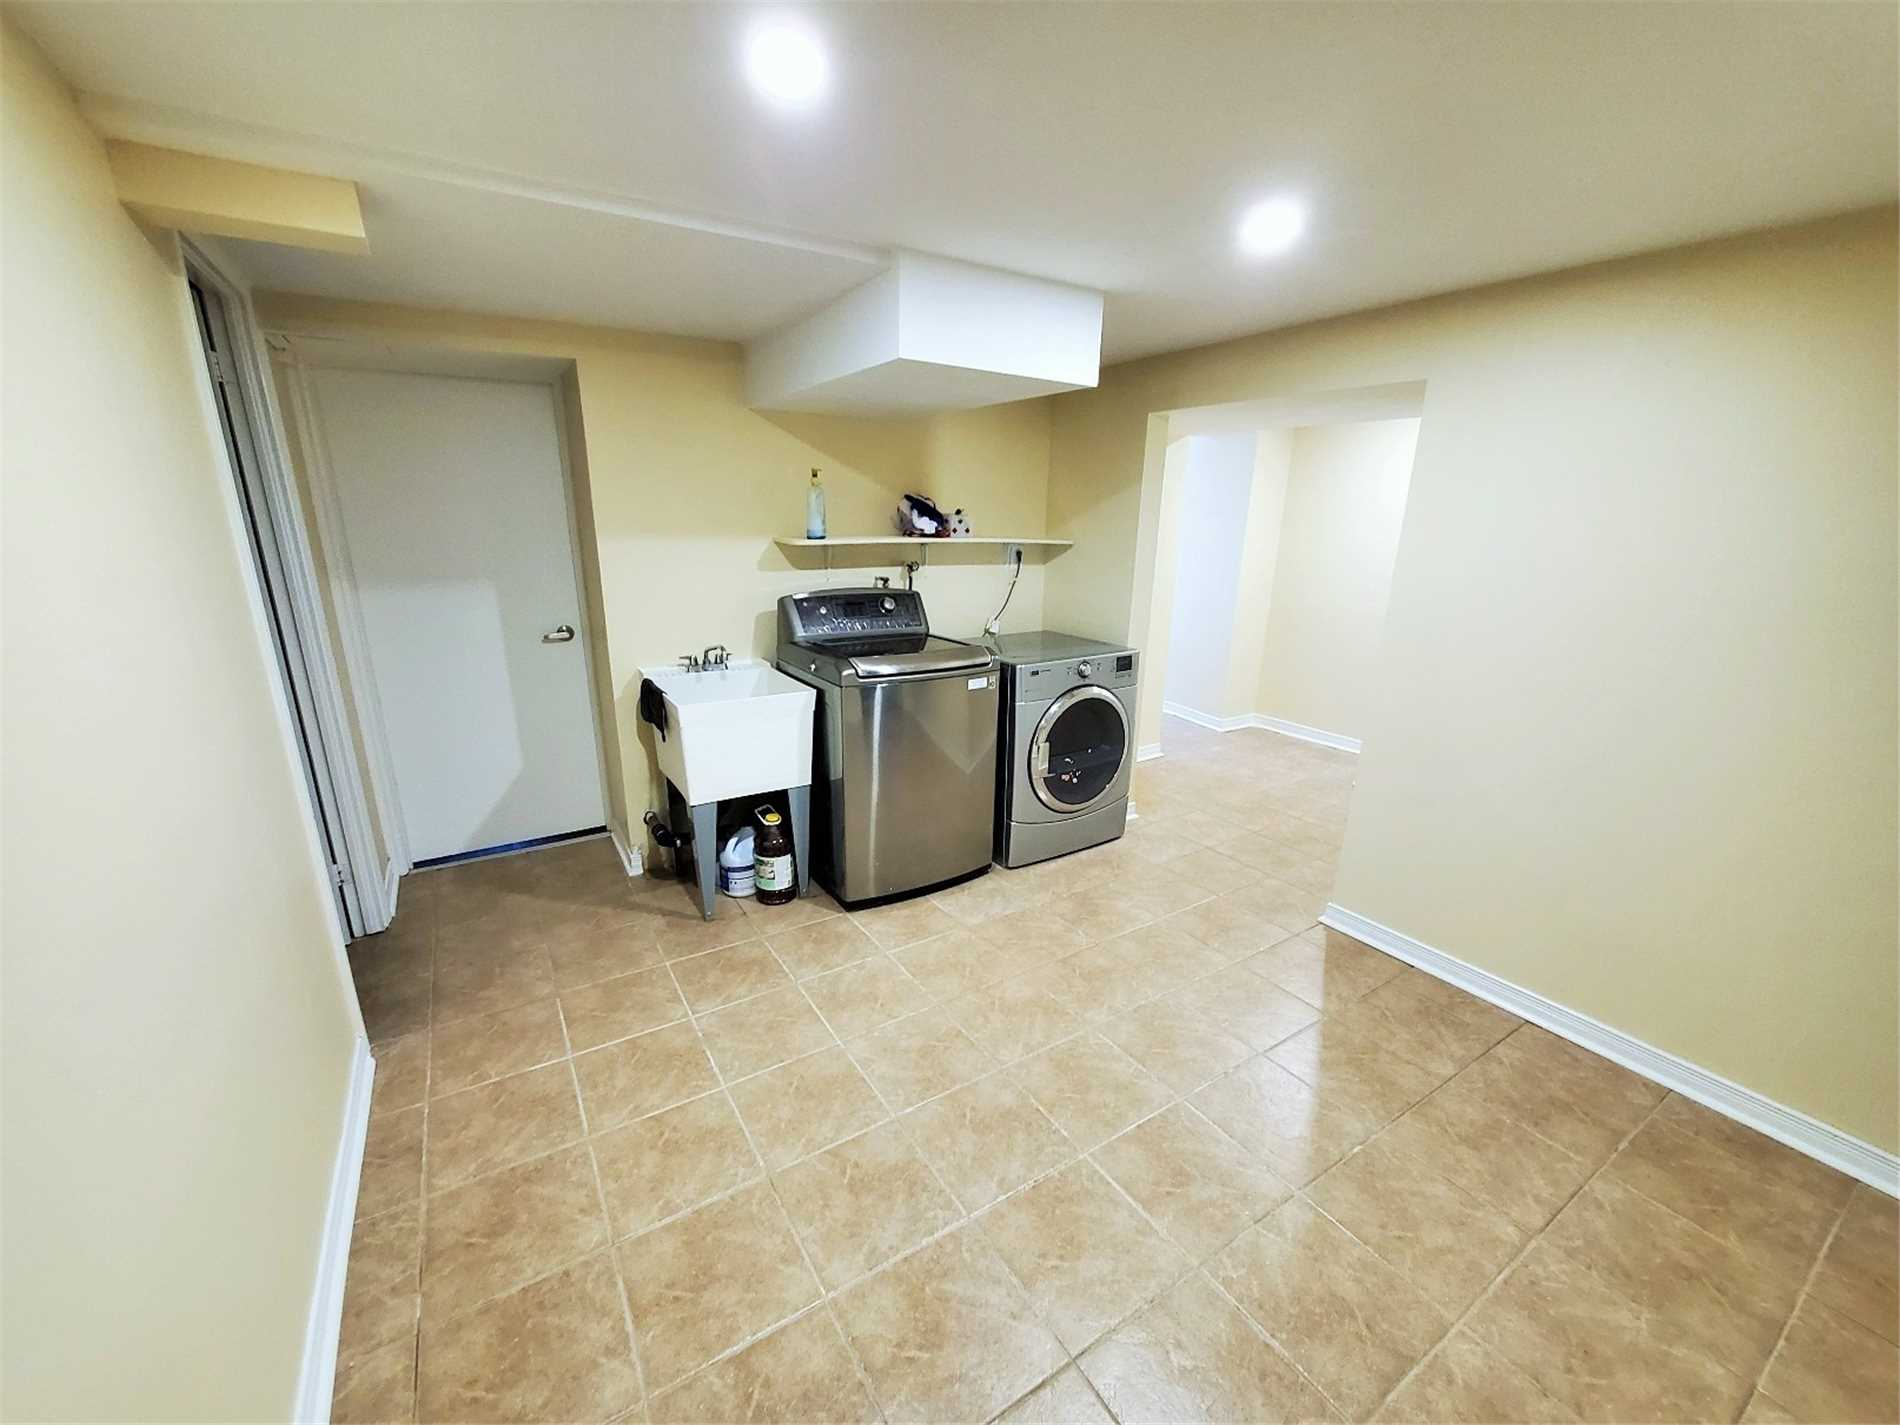 Detached house For Lease In Markham